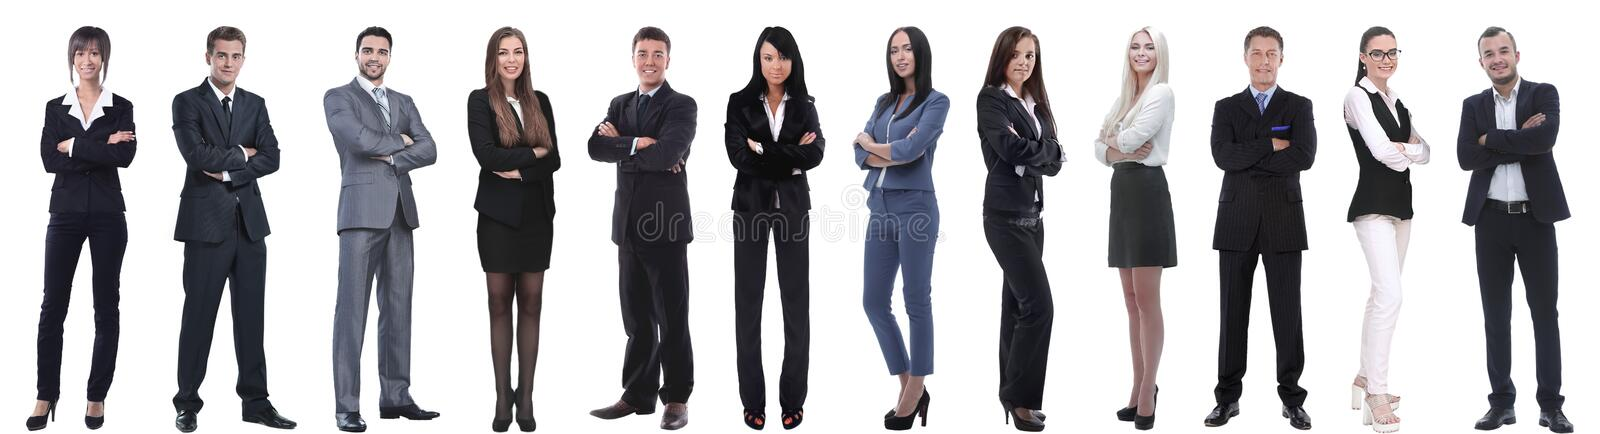 Group of successful business people isolated on white stock images